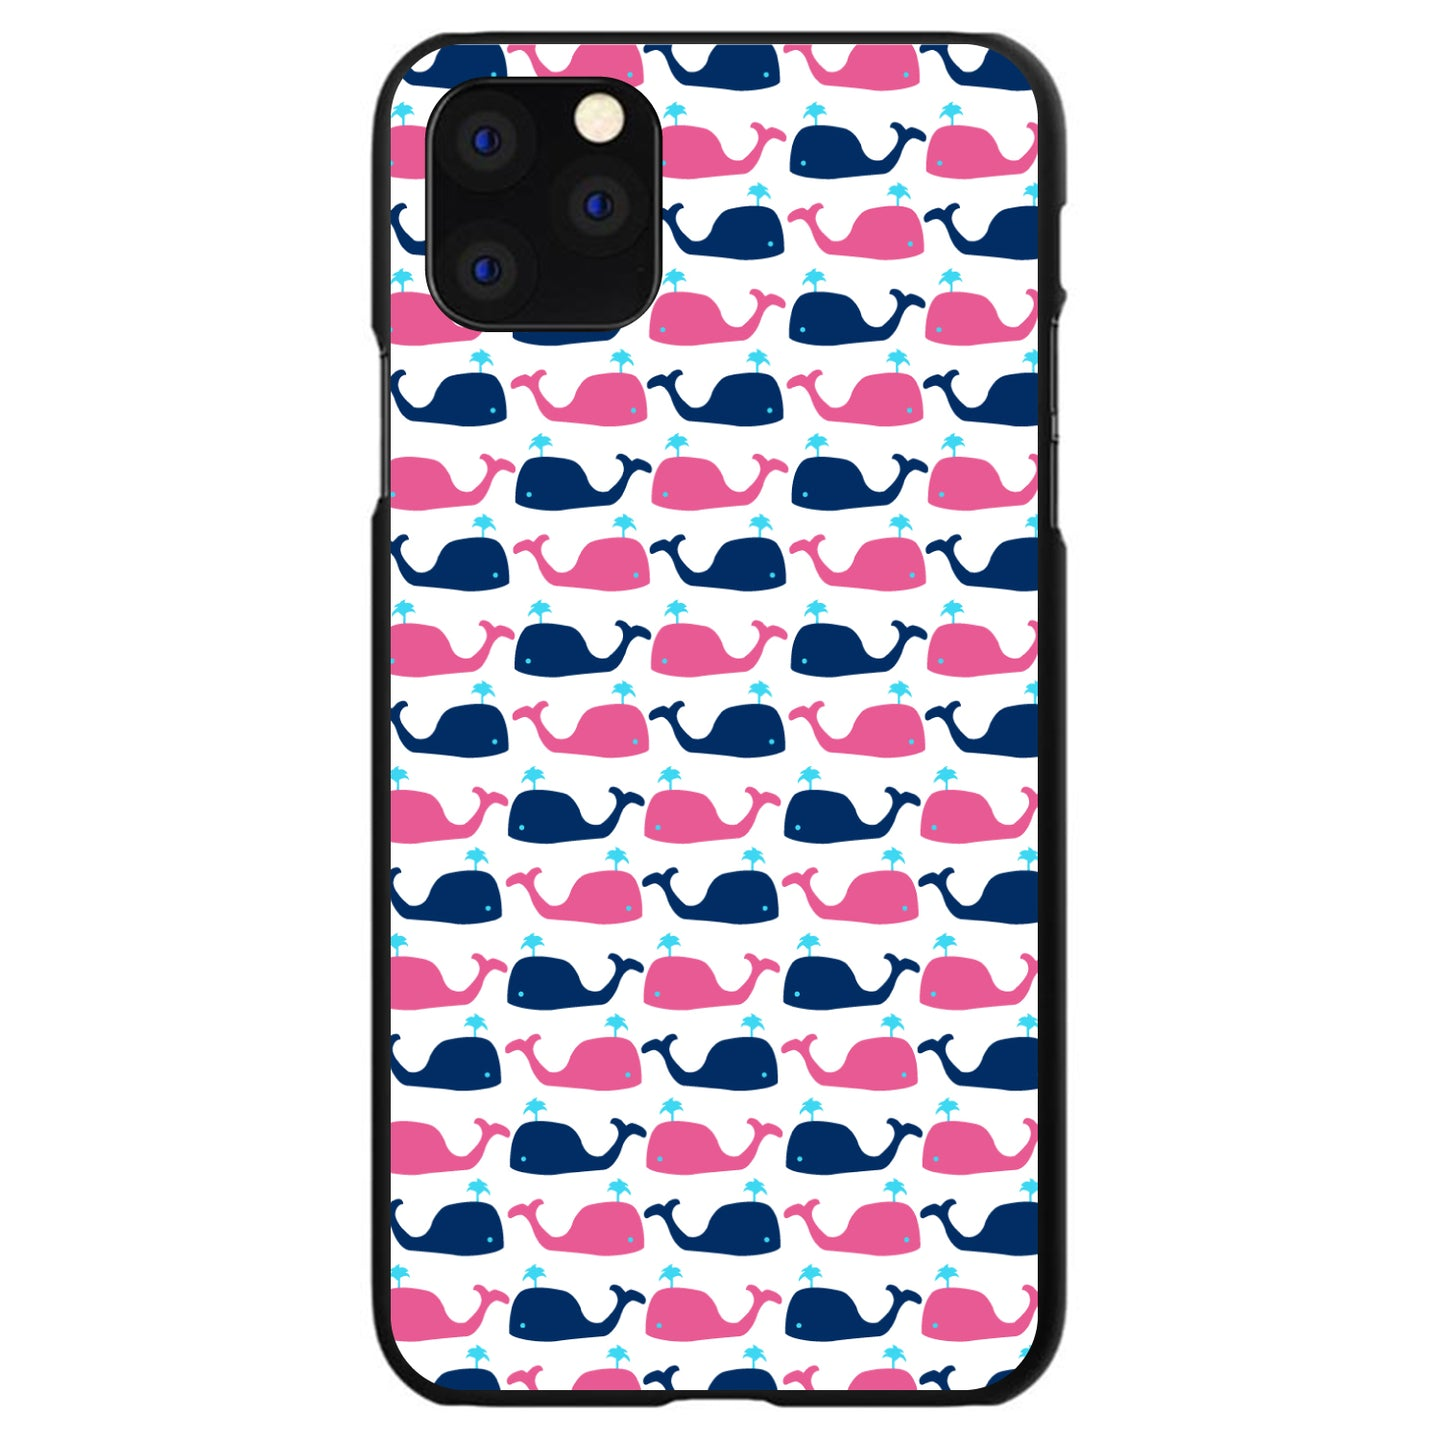 DistinctInk® Hard Plastic Snap-On Case for Apple iPhone - Pink Navy Cartoon Whales